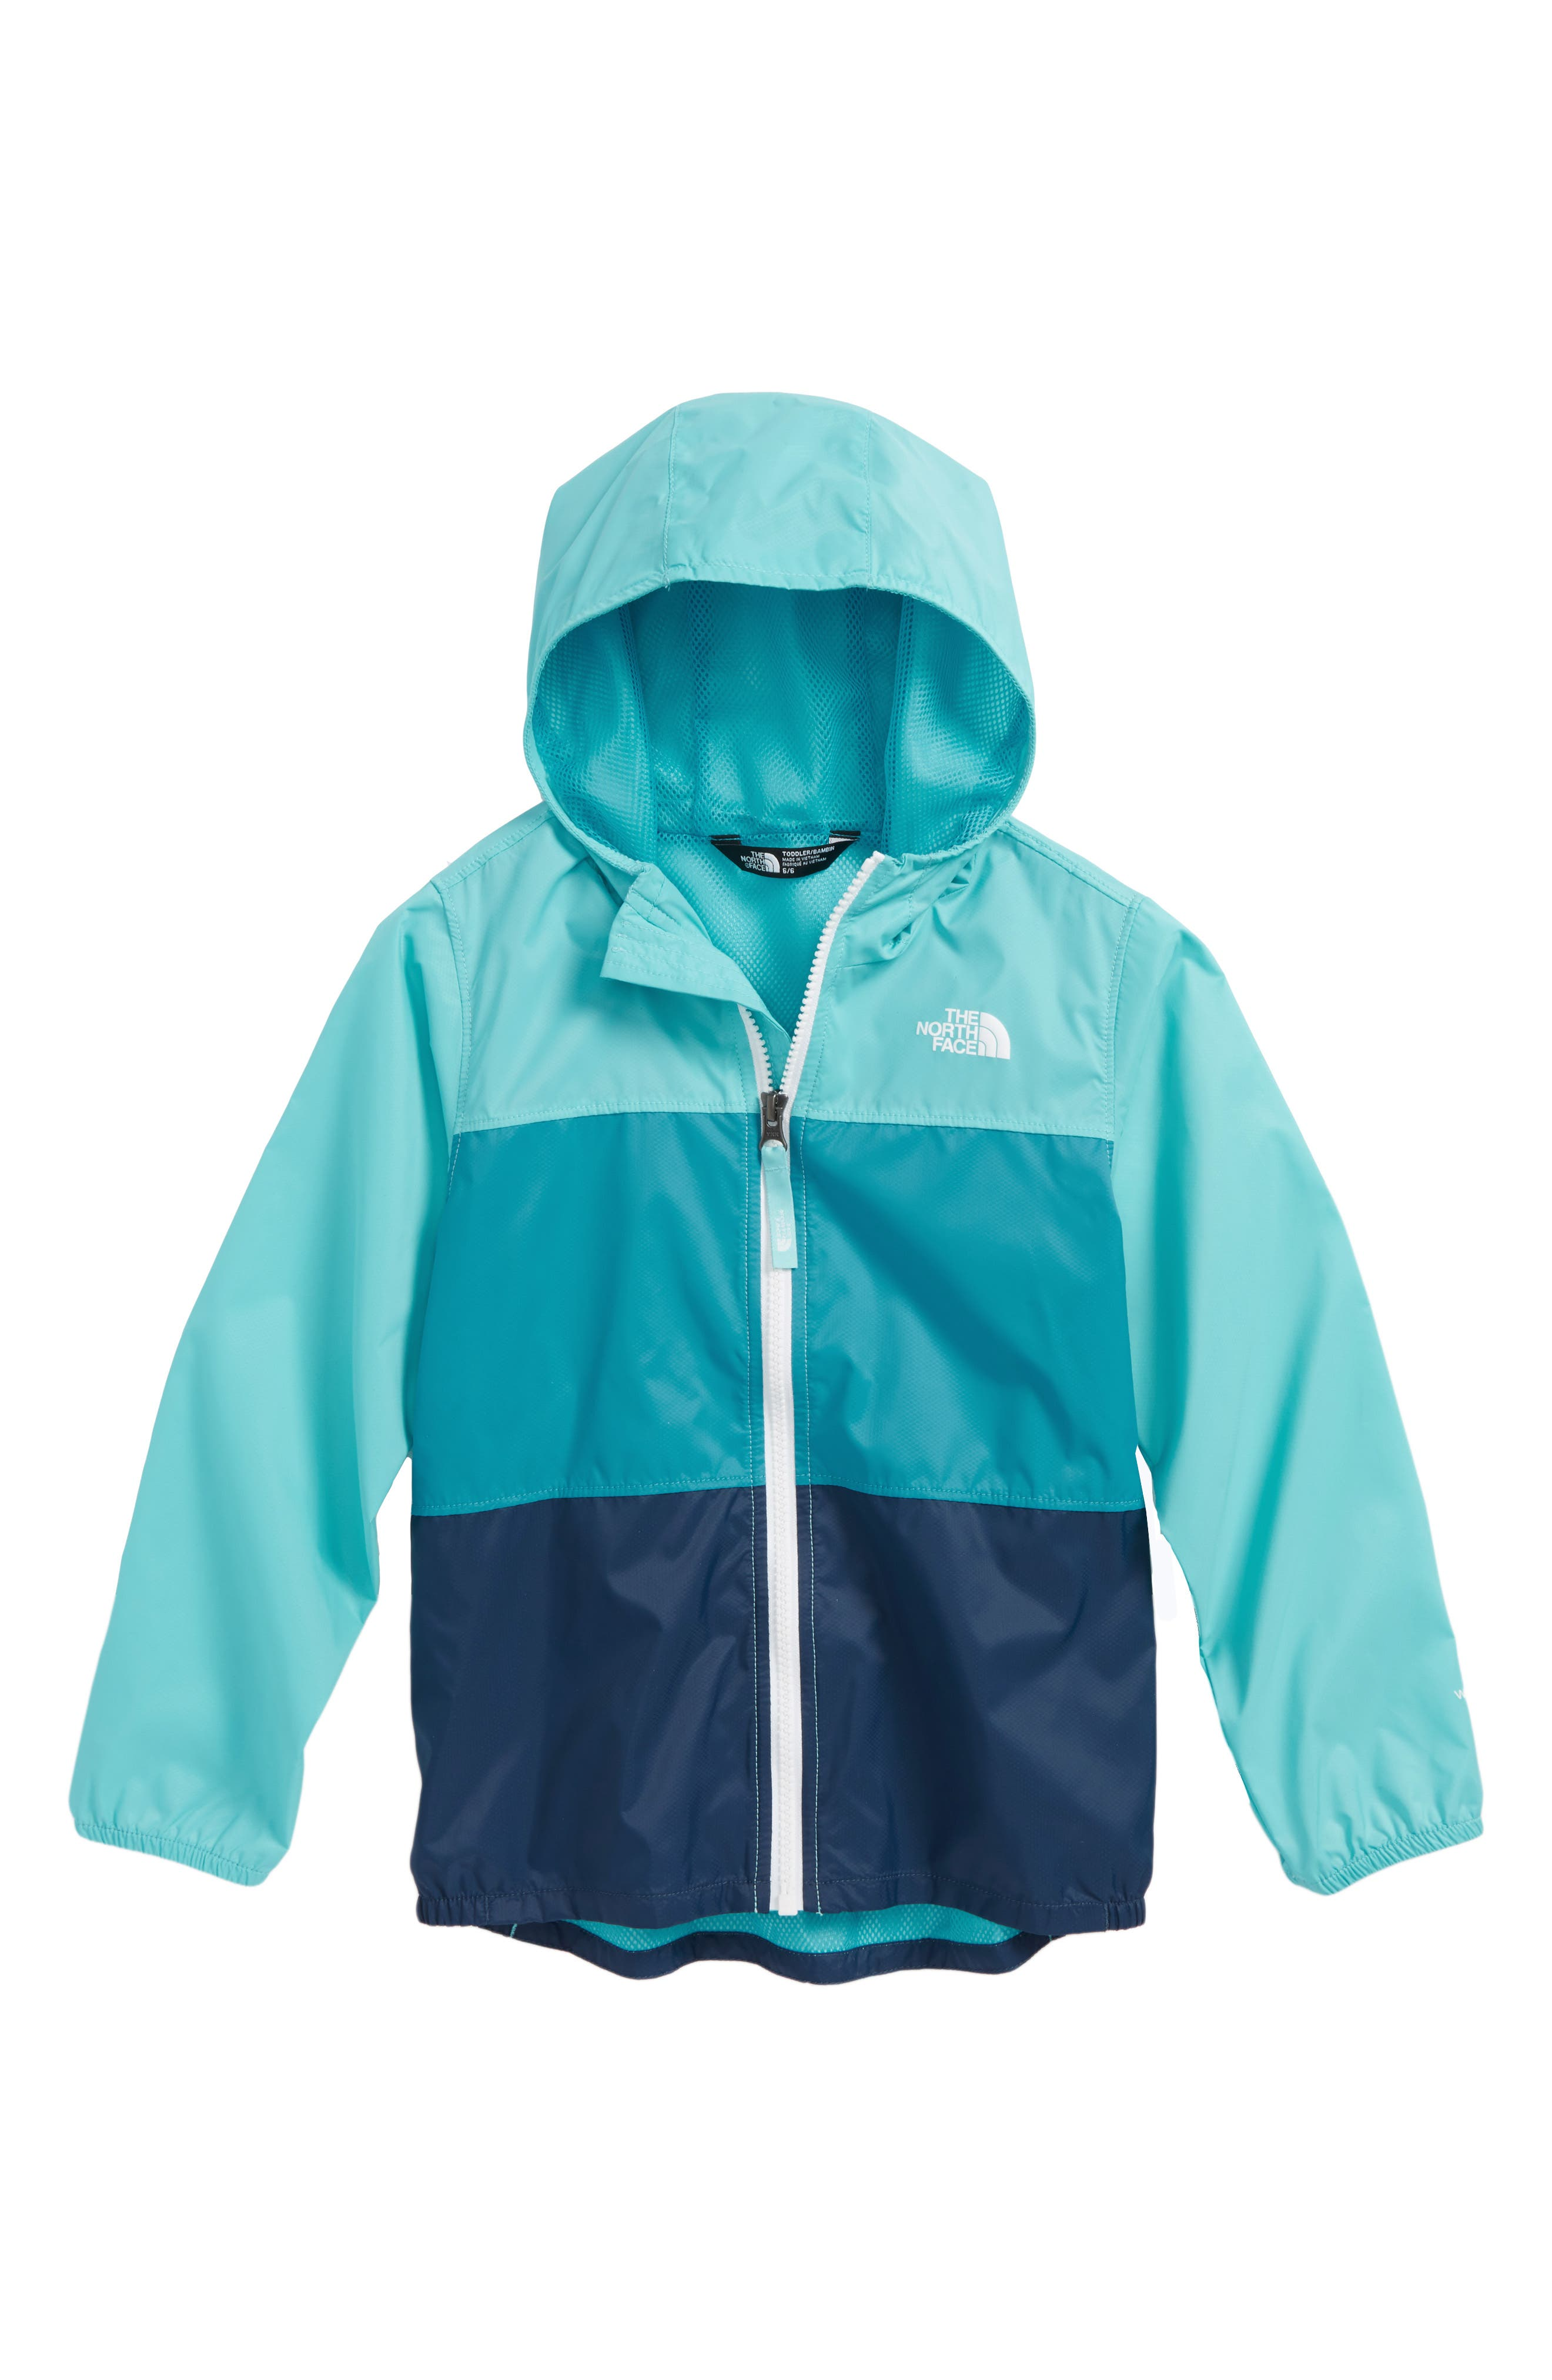 Flurry Water & Wind Repellant Nylon Jacket,                         Main,                         color, Blue Curacao